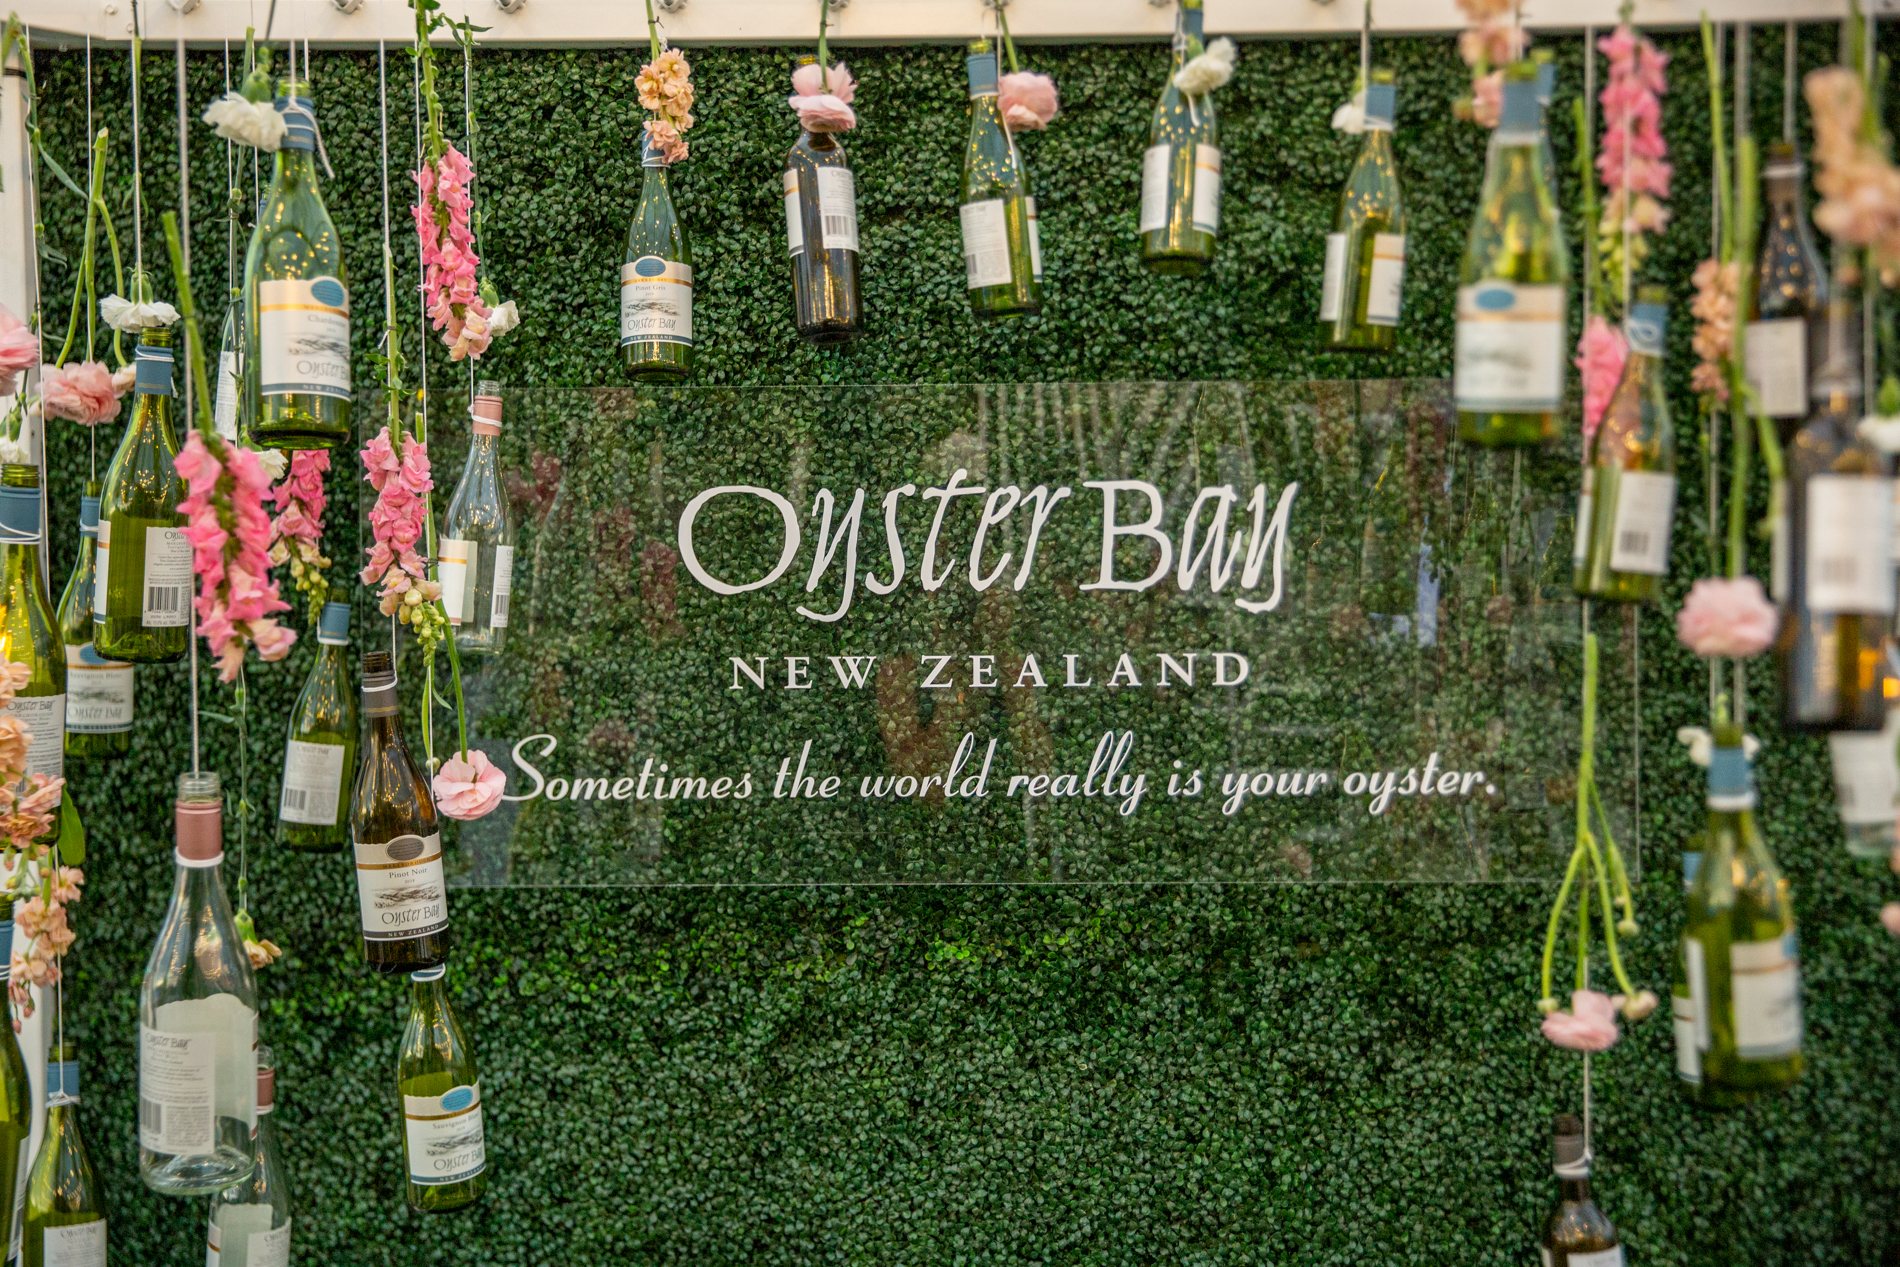 Oyster Bay Rose' Launch